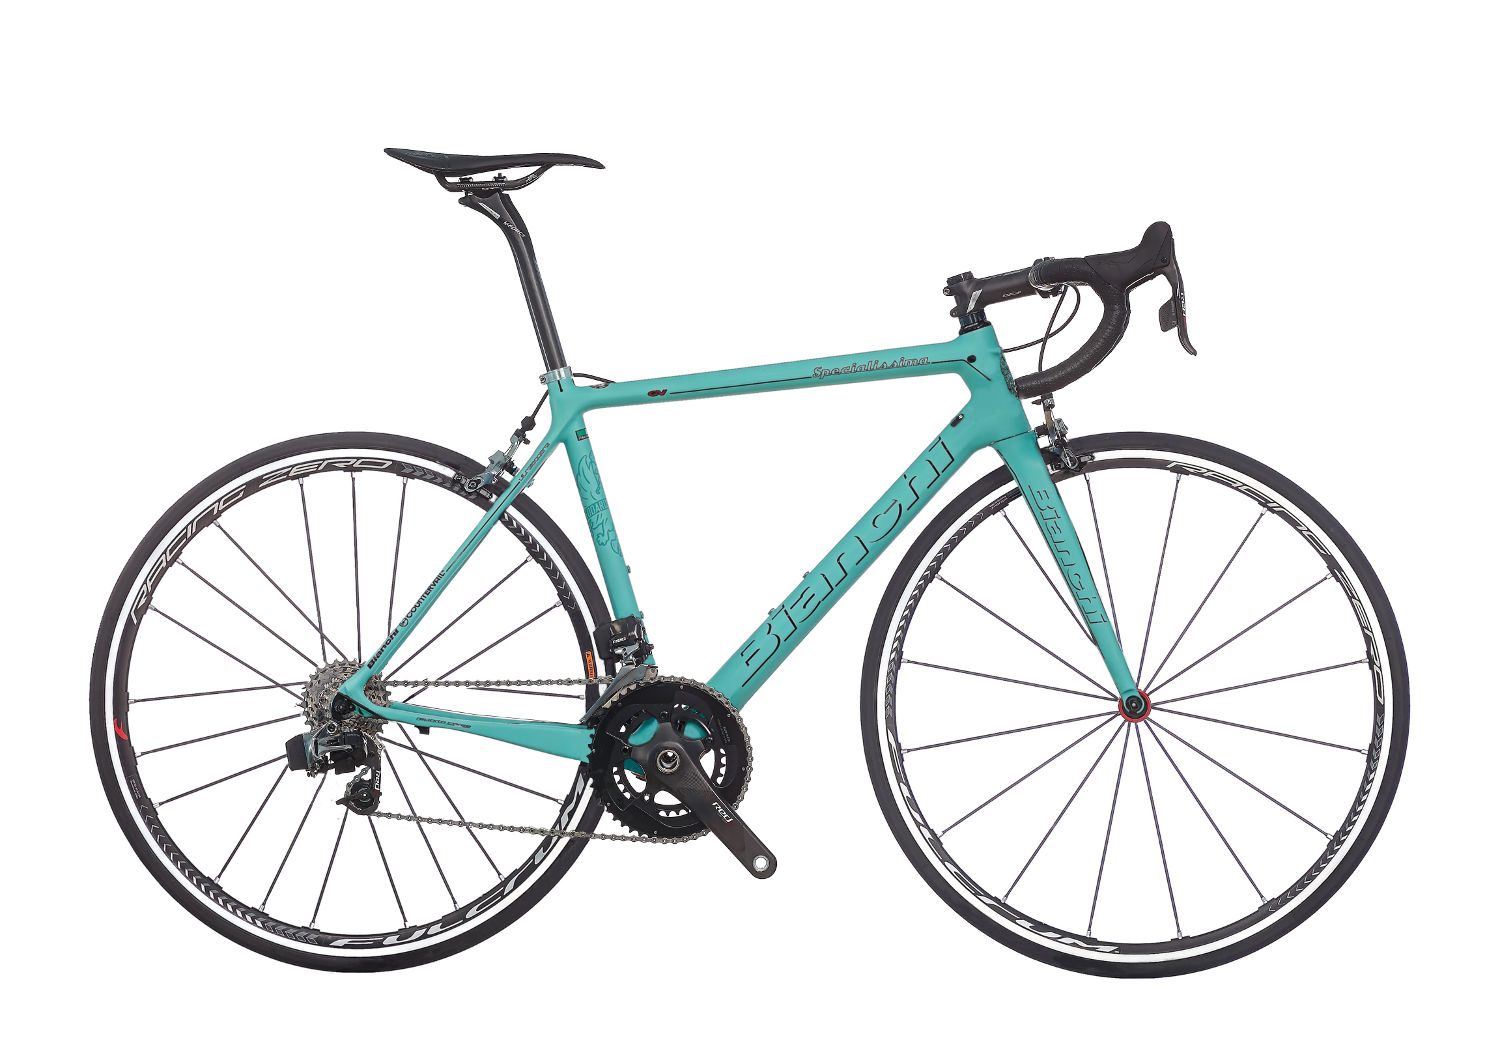 Bianchi Specialissima Red eTap (2017)